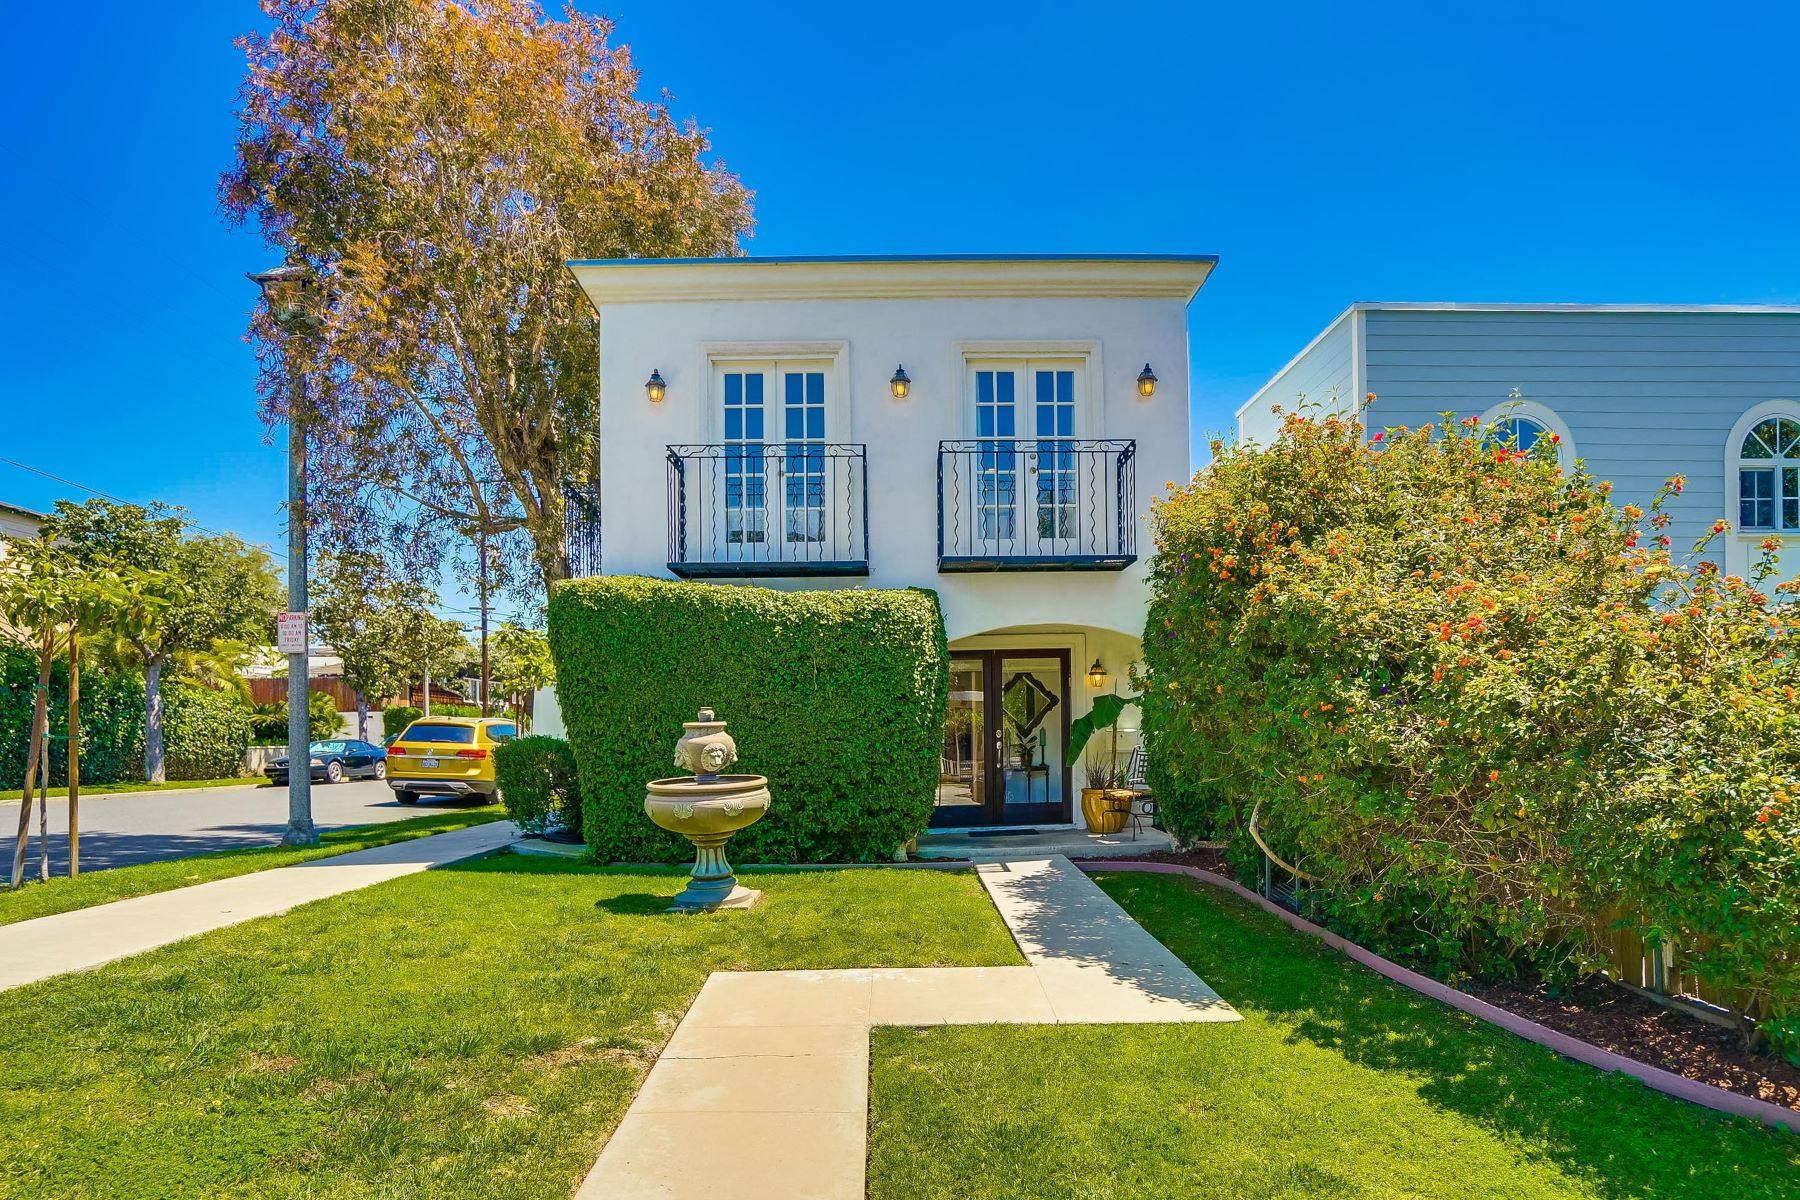 Single Family Homes for Active at 398 Ultimo Ave Long Beach, California 90814 United States